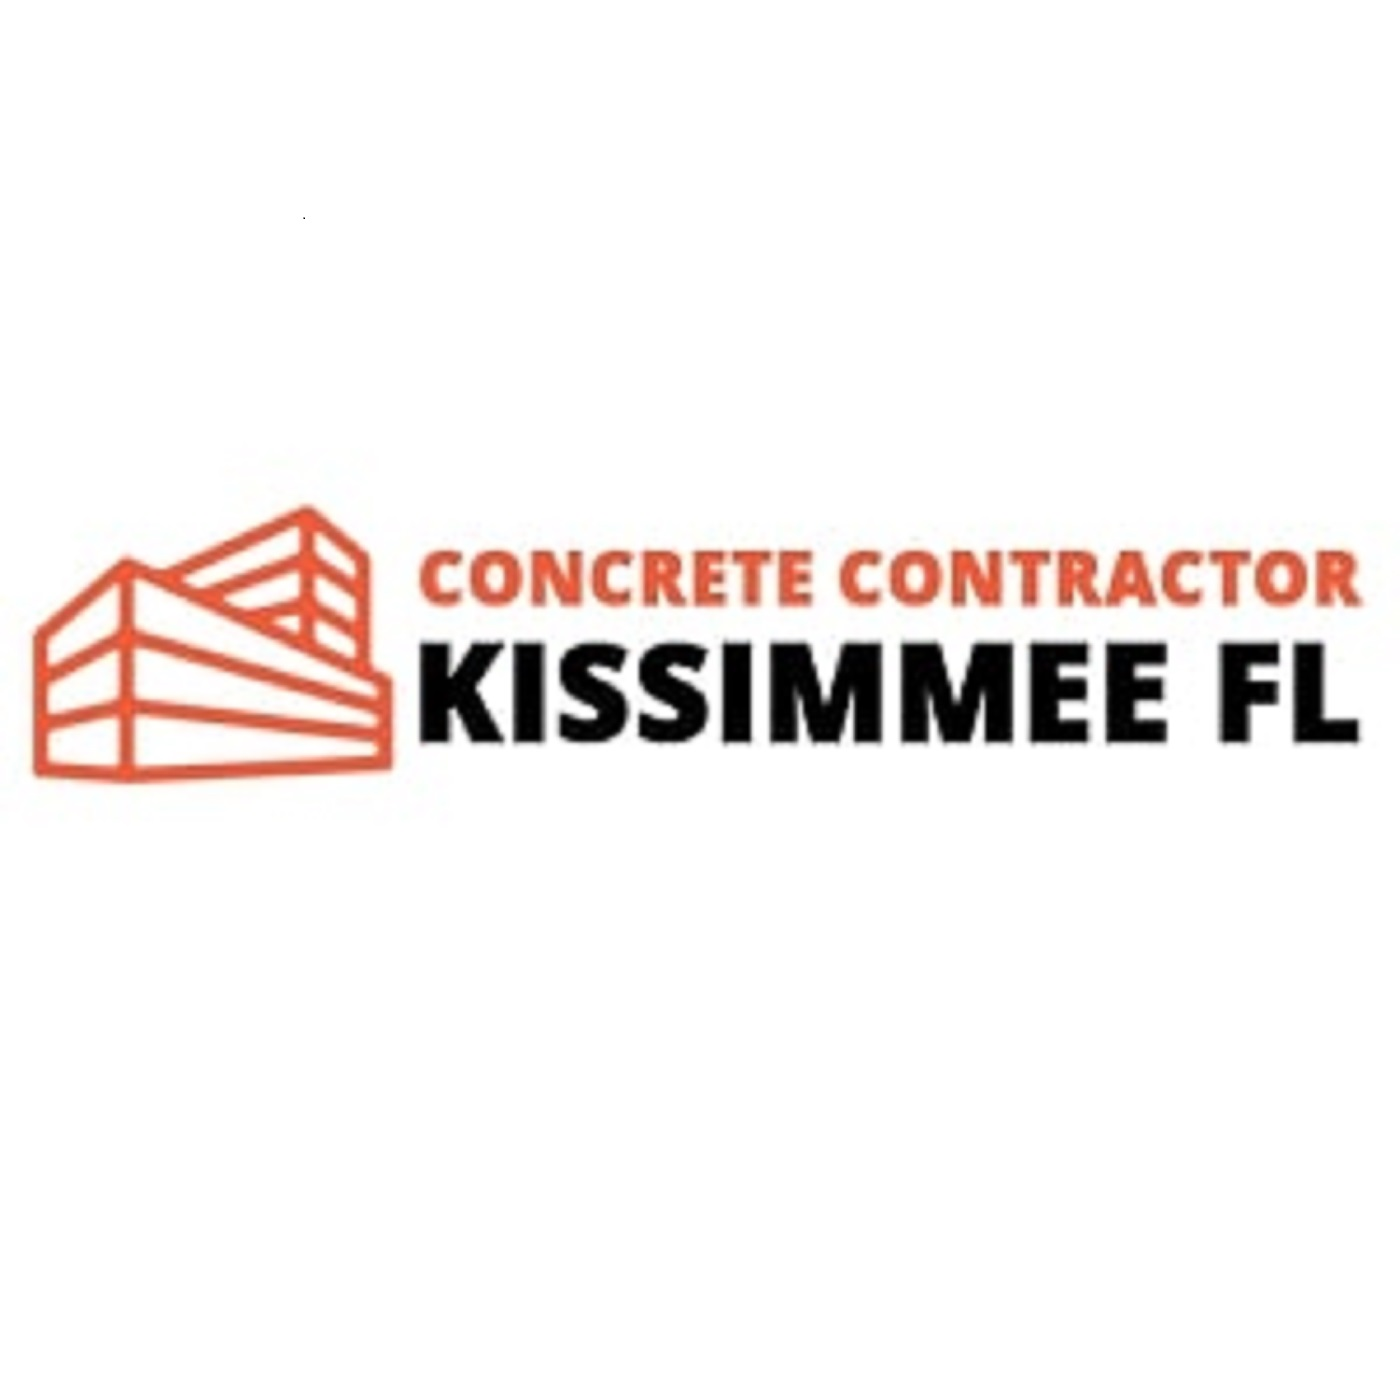 Concrete contractors kissimmee